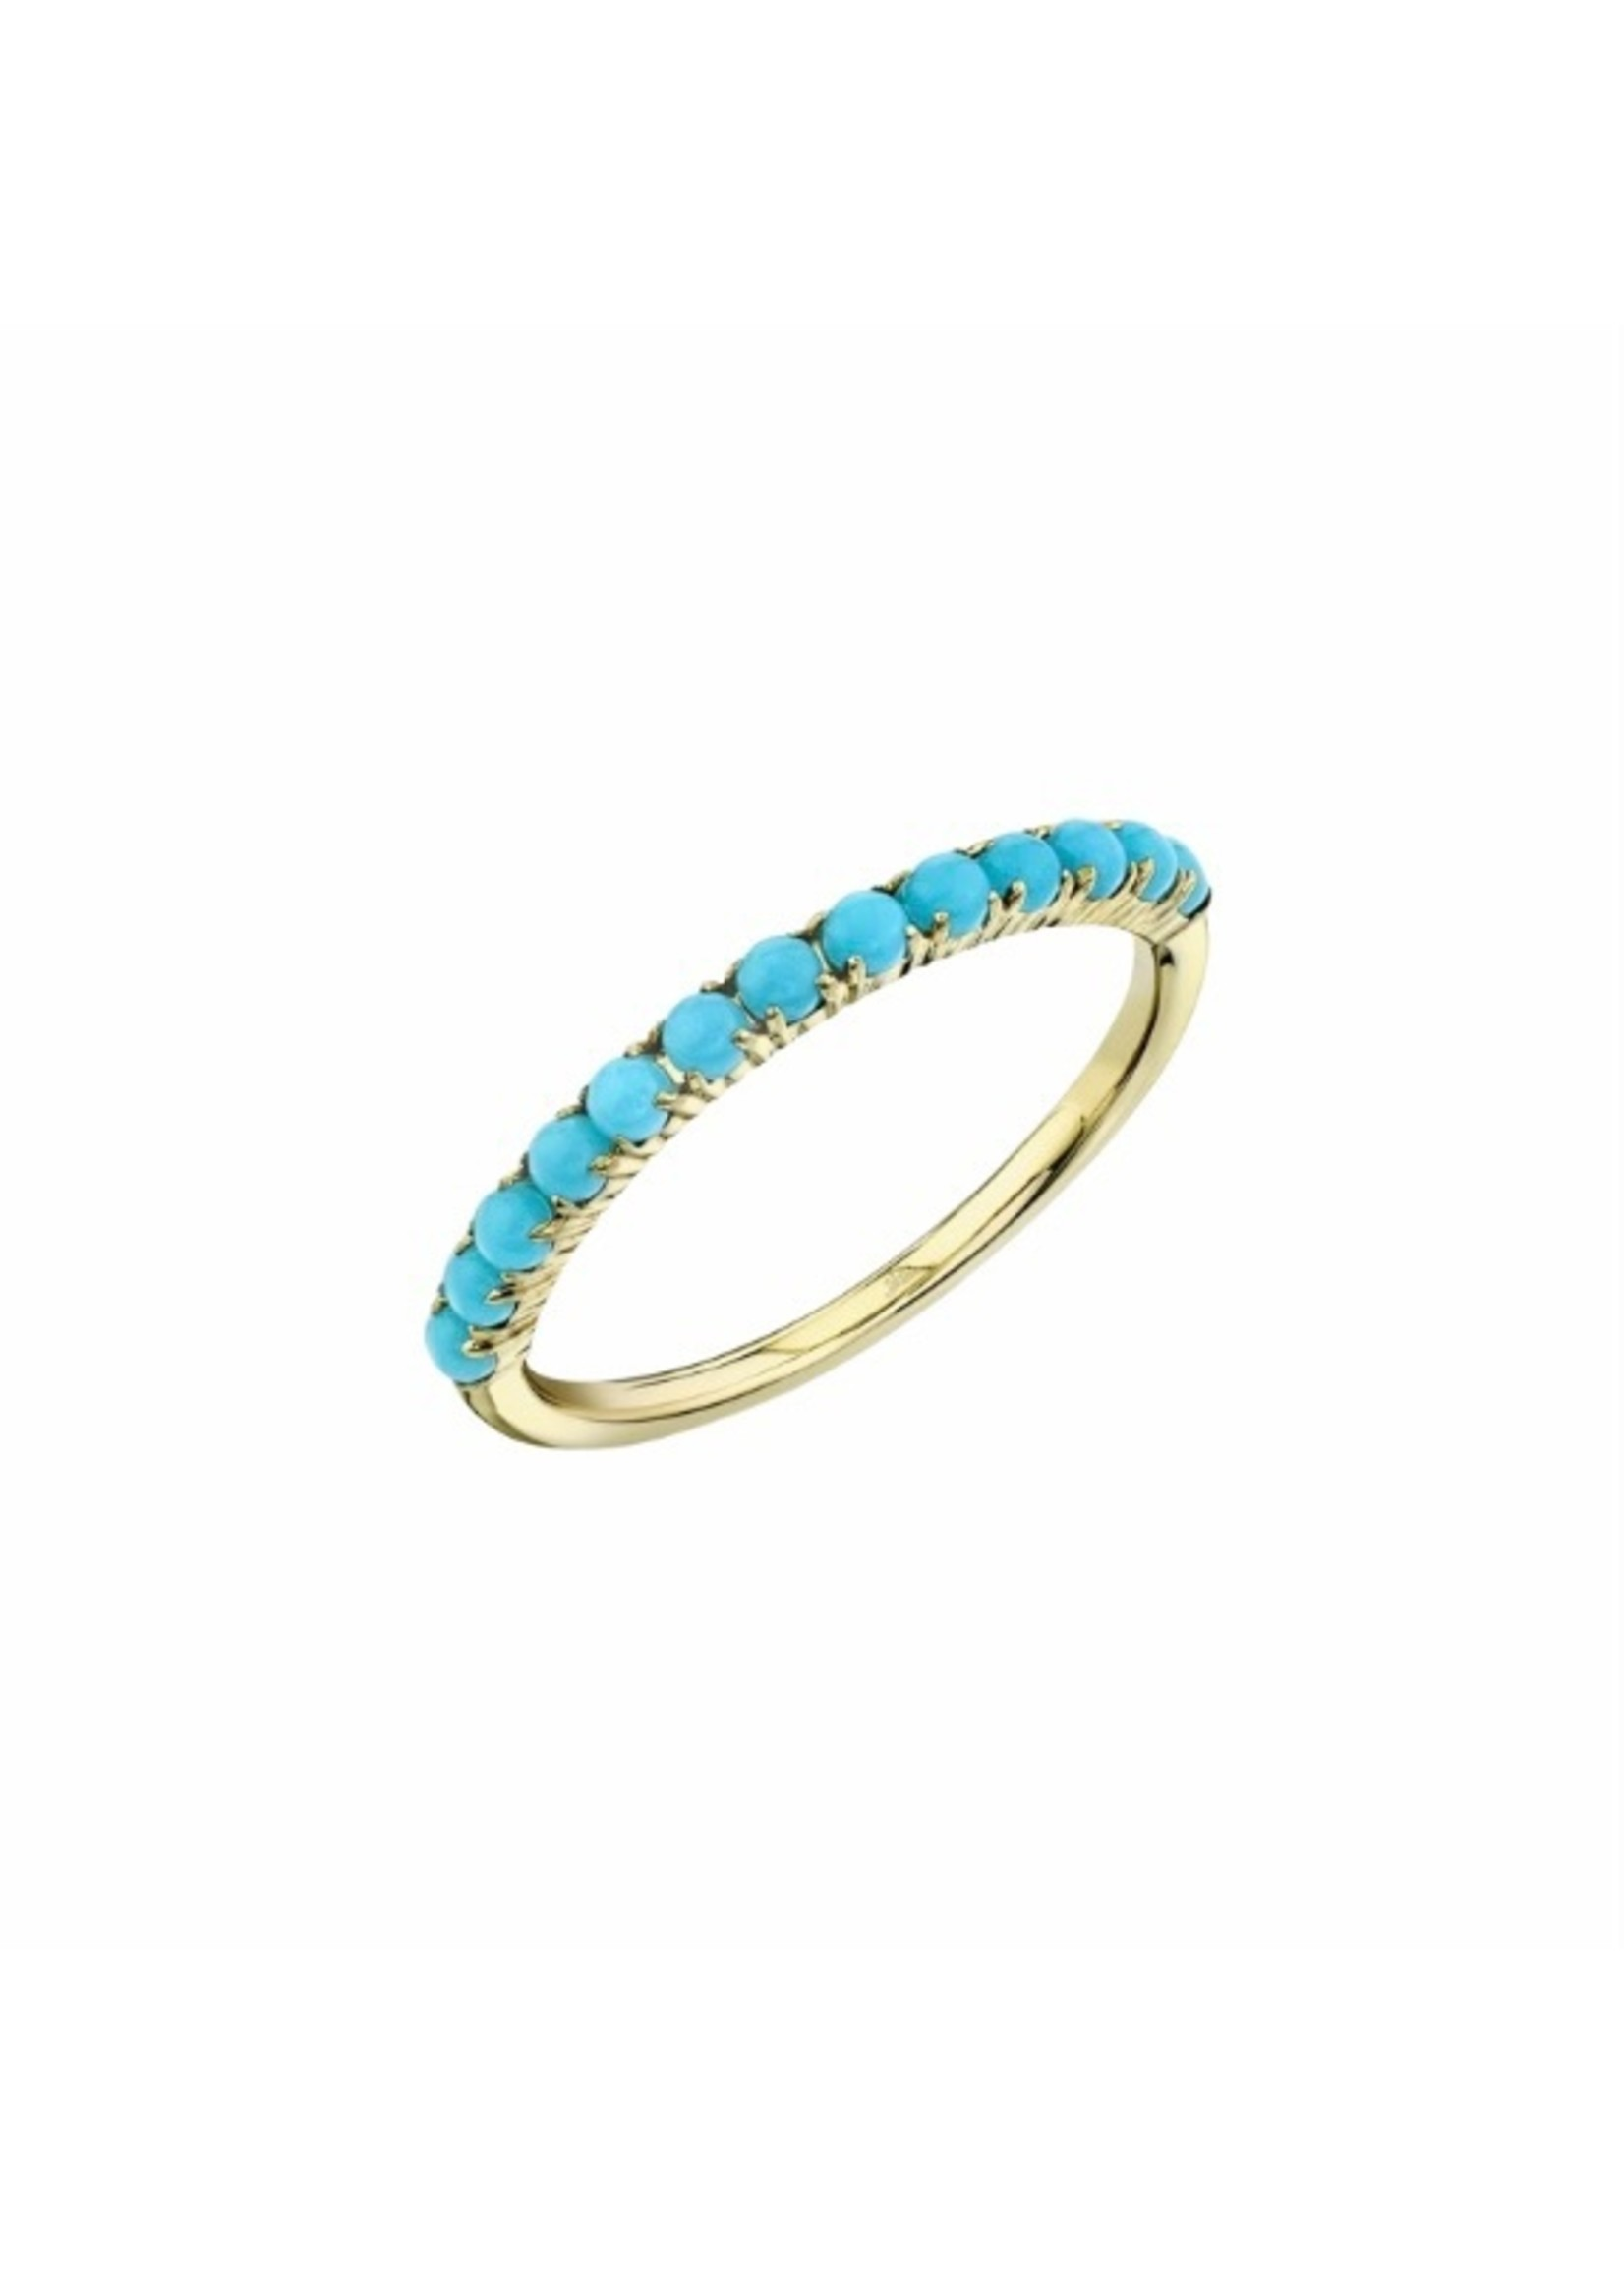 Jill Alberts Composite Turquoise Ring